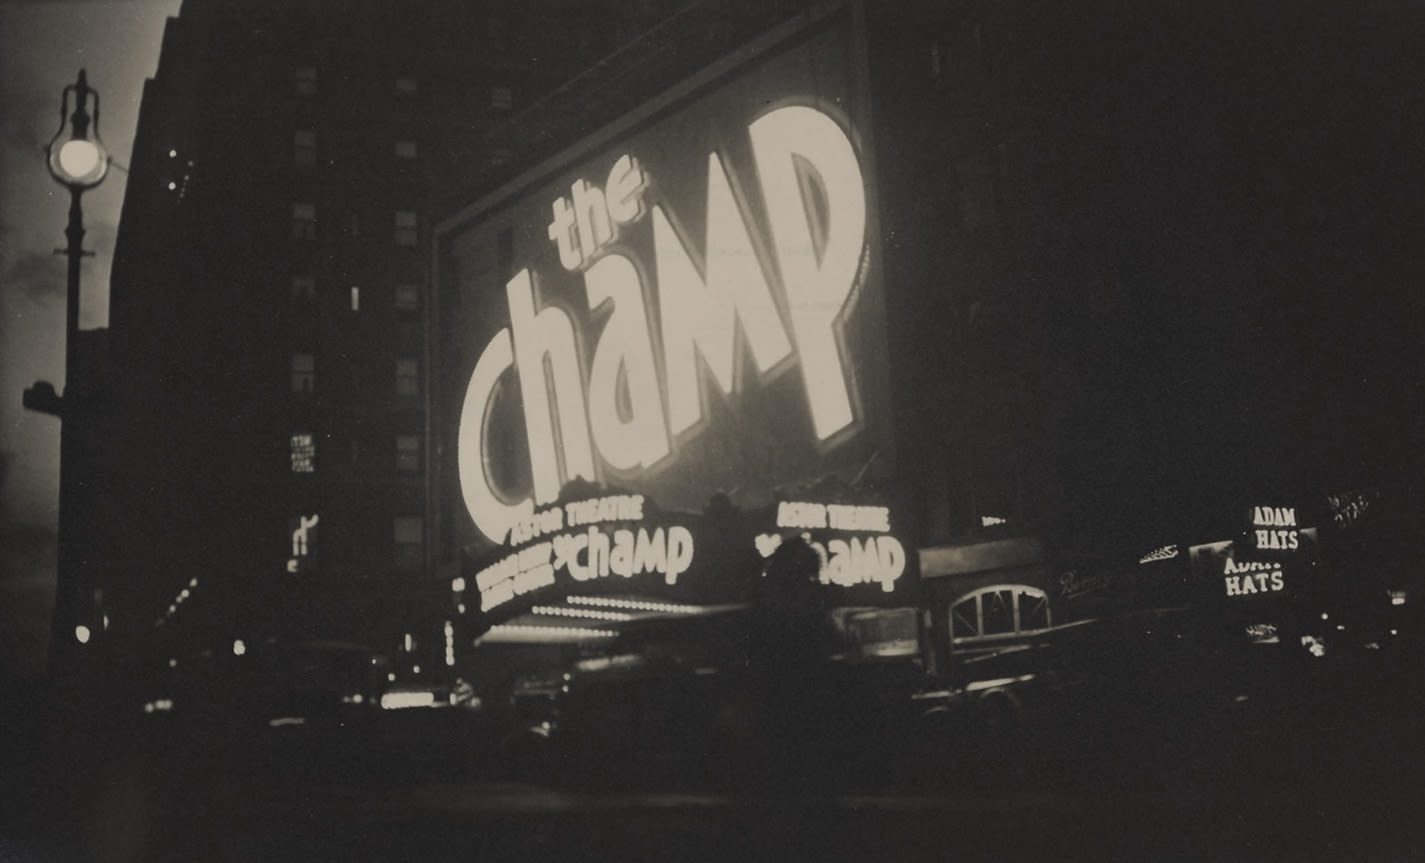 Fred Zinnemann, The Champ, Astor Theatre, Times Square, New York, November 1931